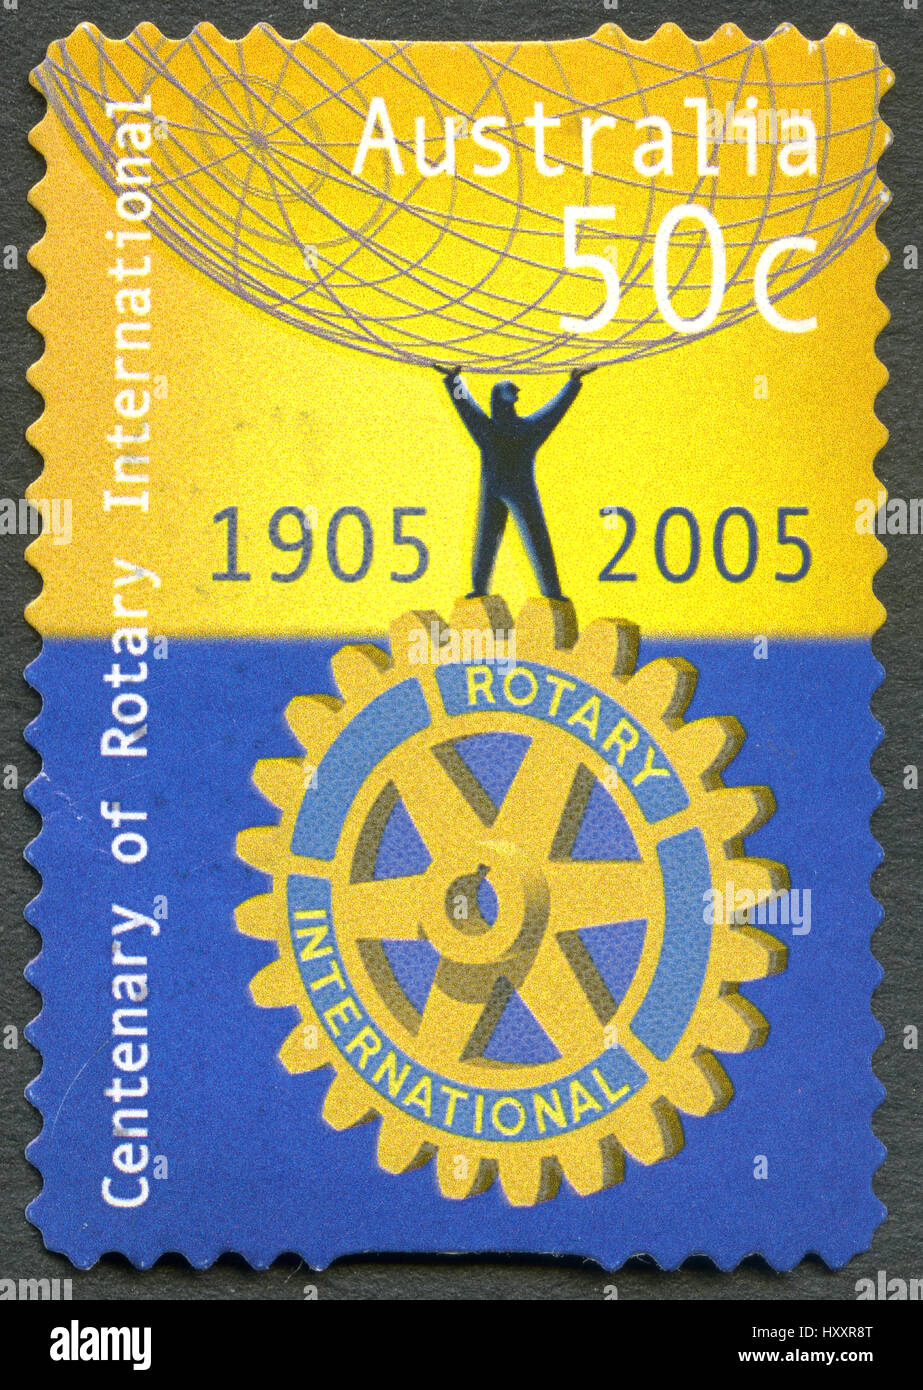 AUSTRALIA - CIRCA 2005: A used postage stamp from Australia, celebrating the centenary of Rotary International, - Stock Image